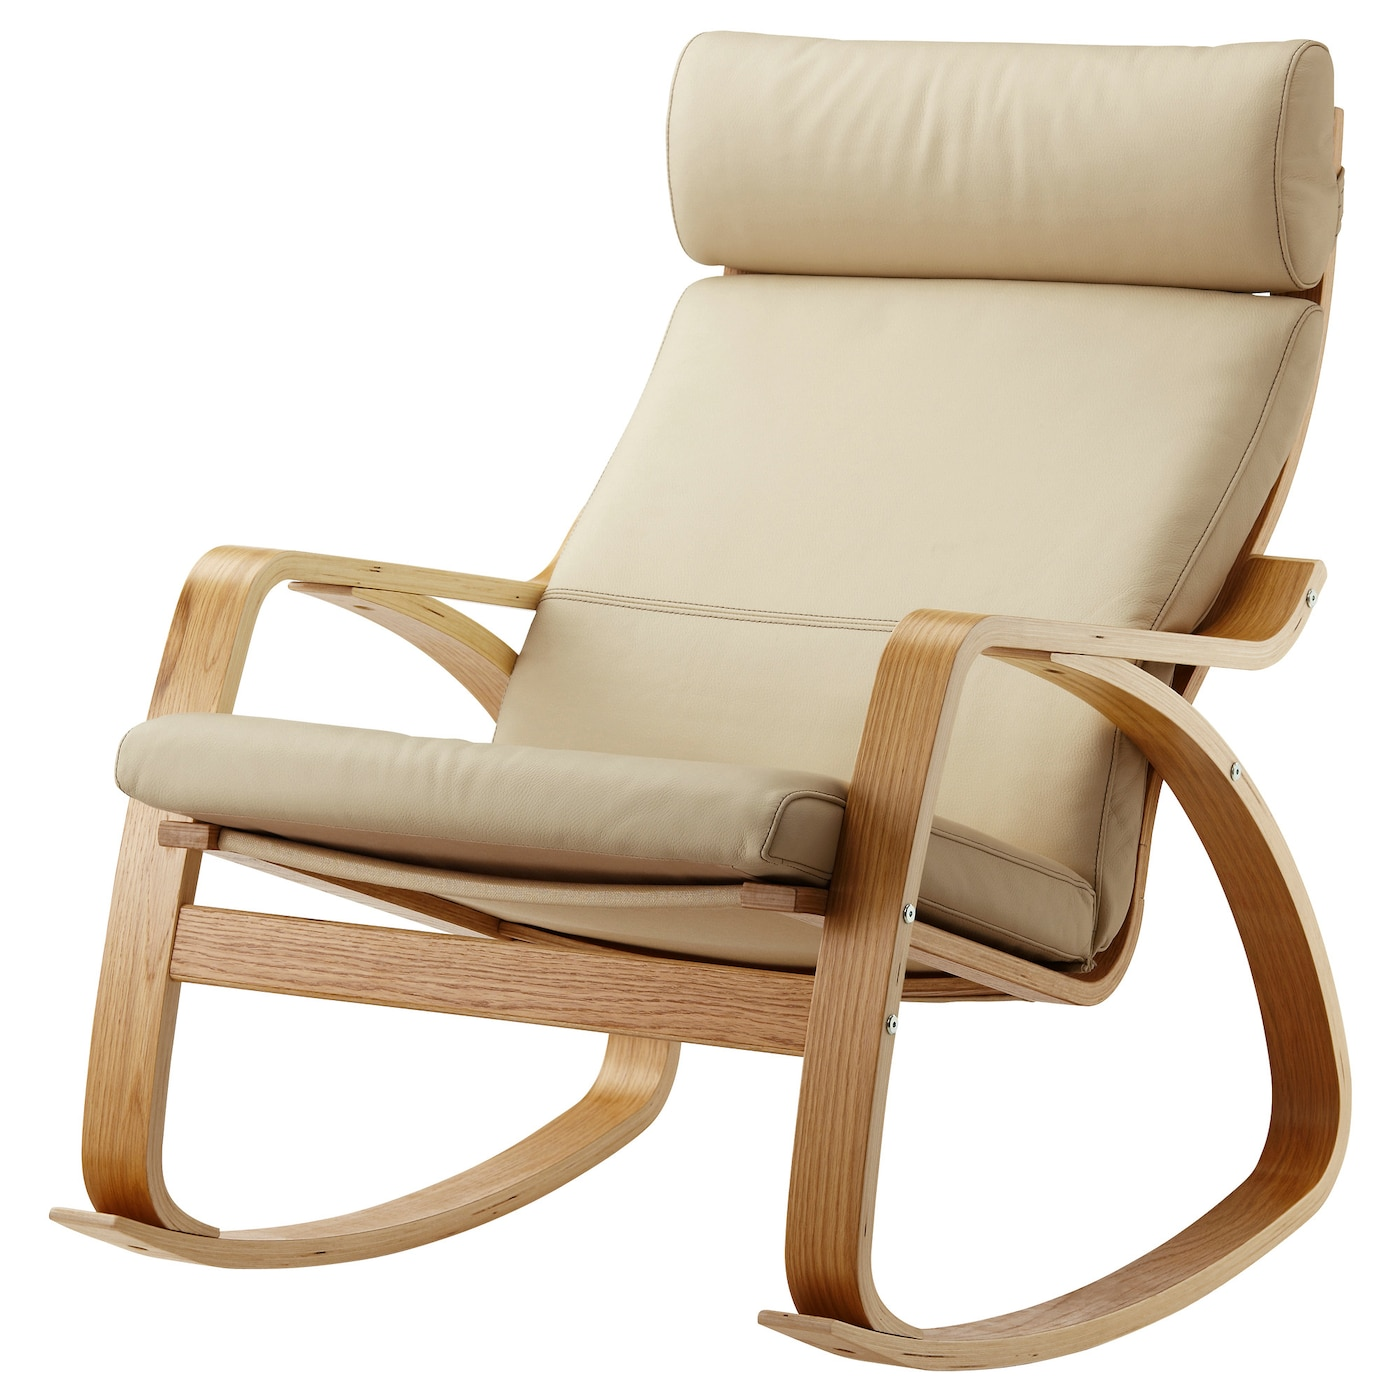 Basket chair ikea - Ikea Po Ng Rocking Chair The High Back Gives Good Support For Your Neck